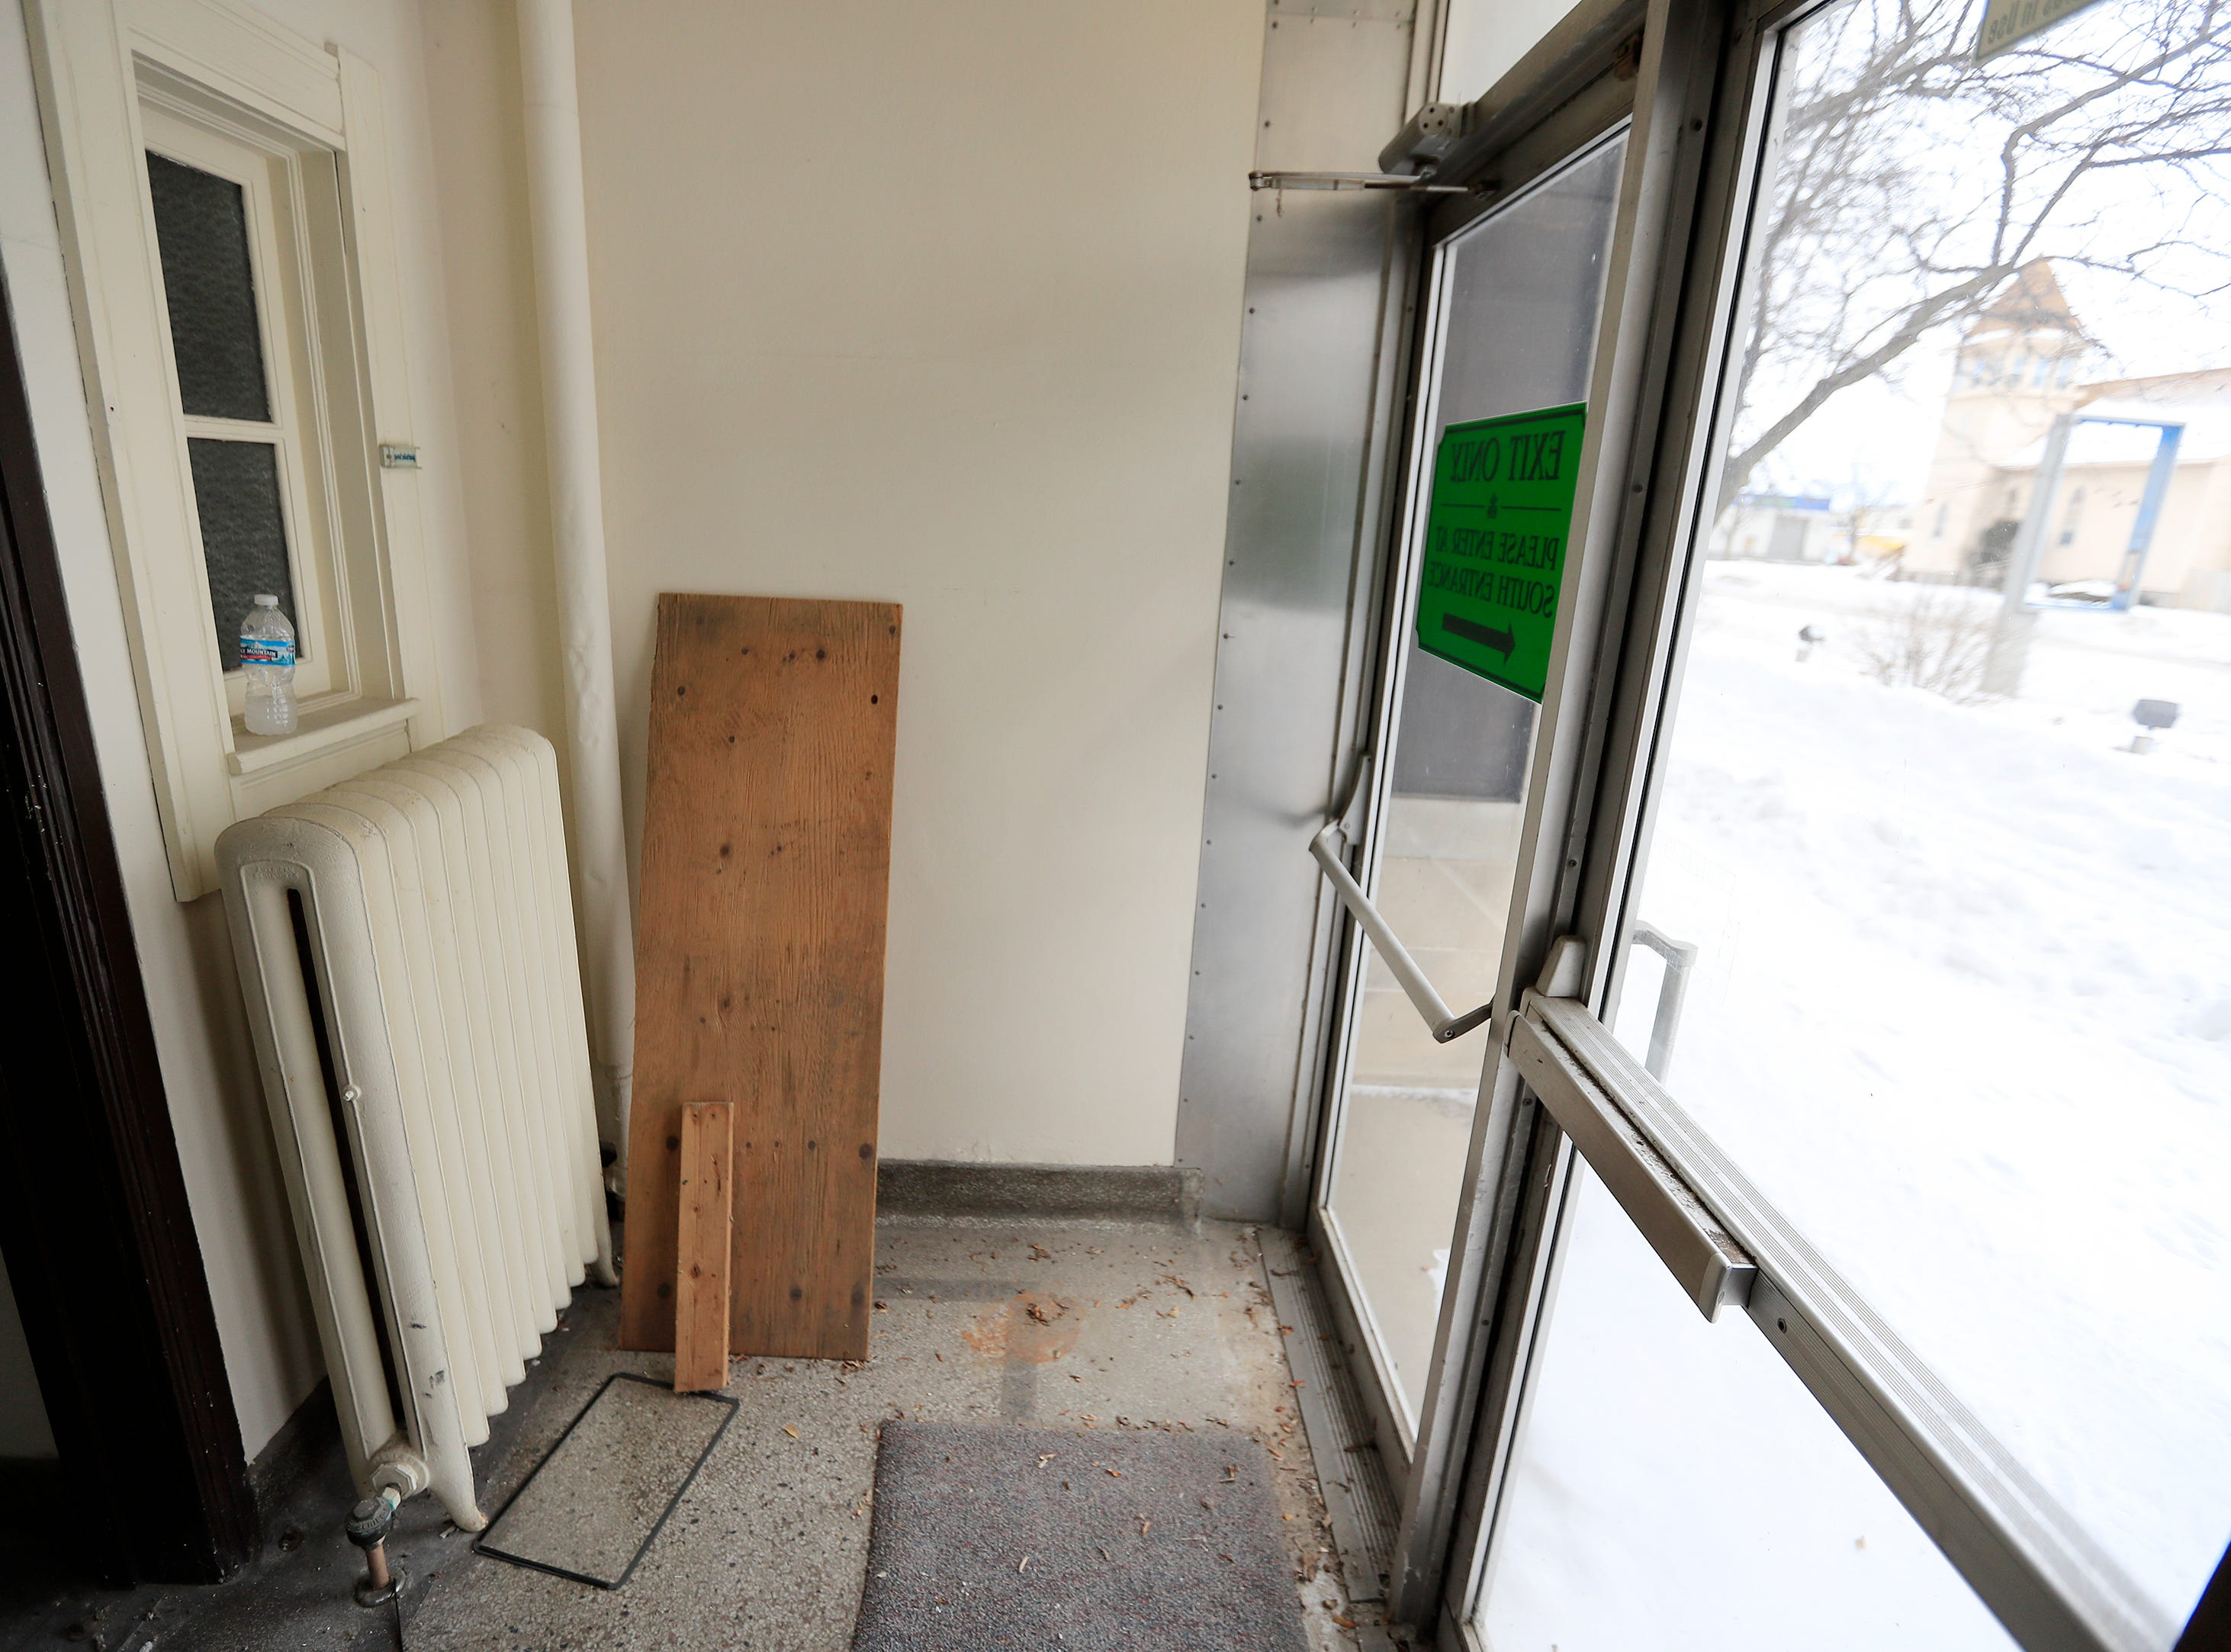 A doorway at the former Whitney School building is shown on Tuesday, February 26, 2019 in Green Bay, Wis. The building is being converted into apartments this year.